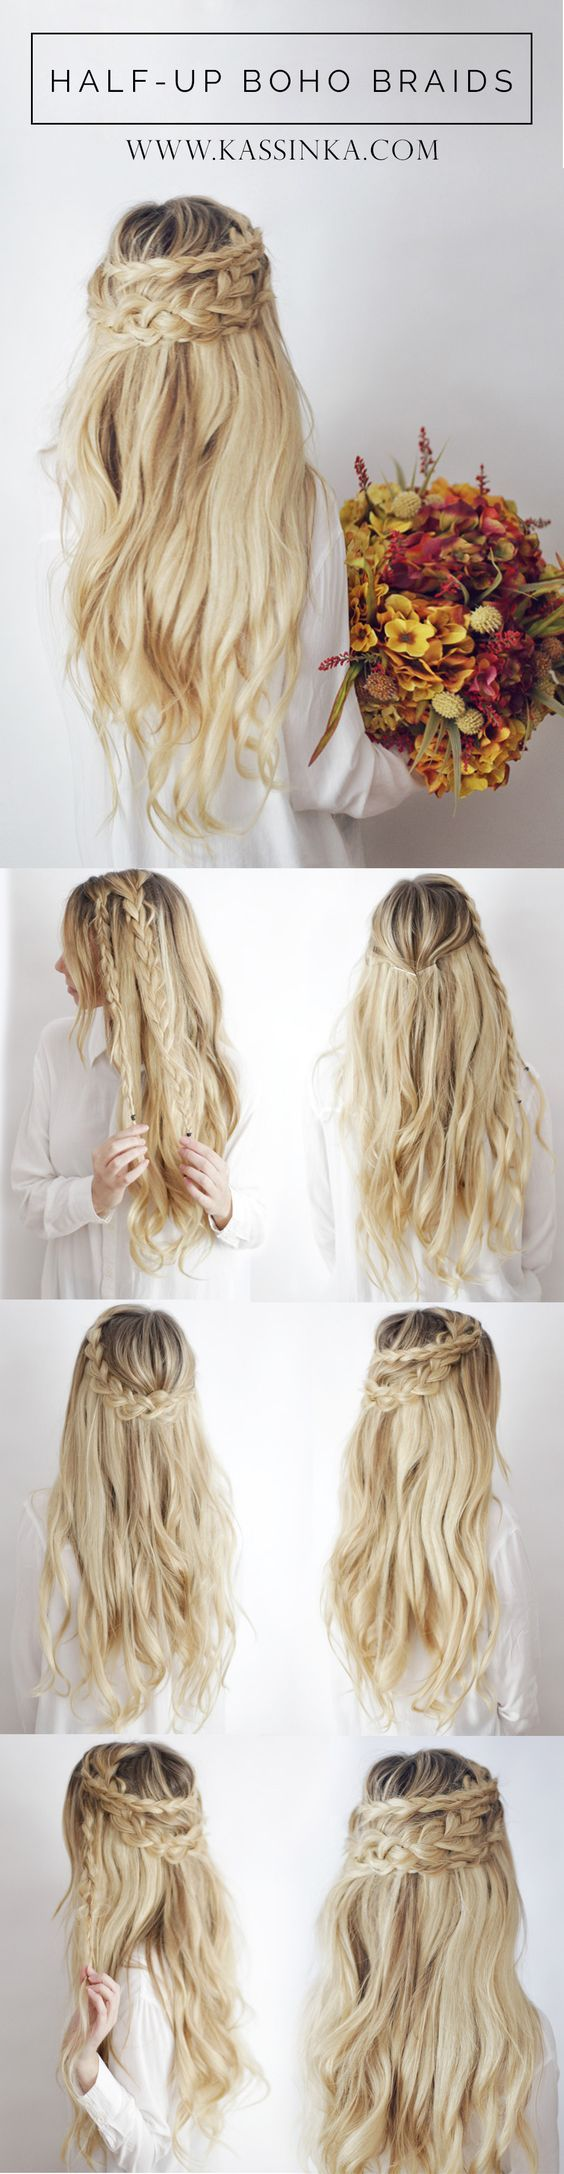 60 Easy Step By Step Hair Tutorials For Long Medium And Short Hair Page 11 Of 53 Her Style Codeamazon Banner Ad Hair Styles Long Hair Styles Hair Tutorial